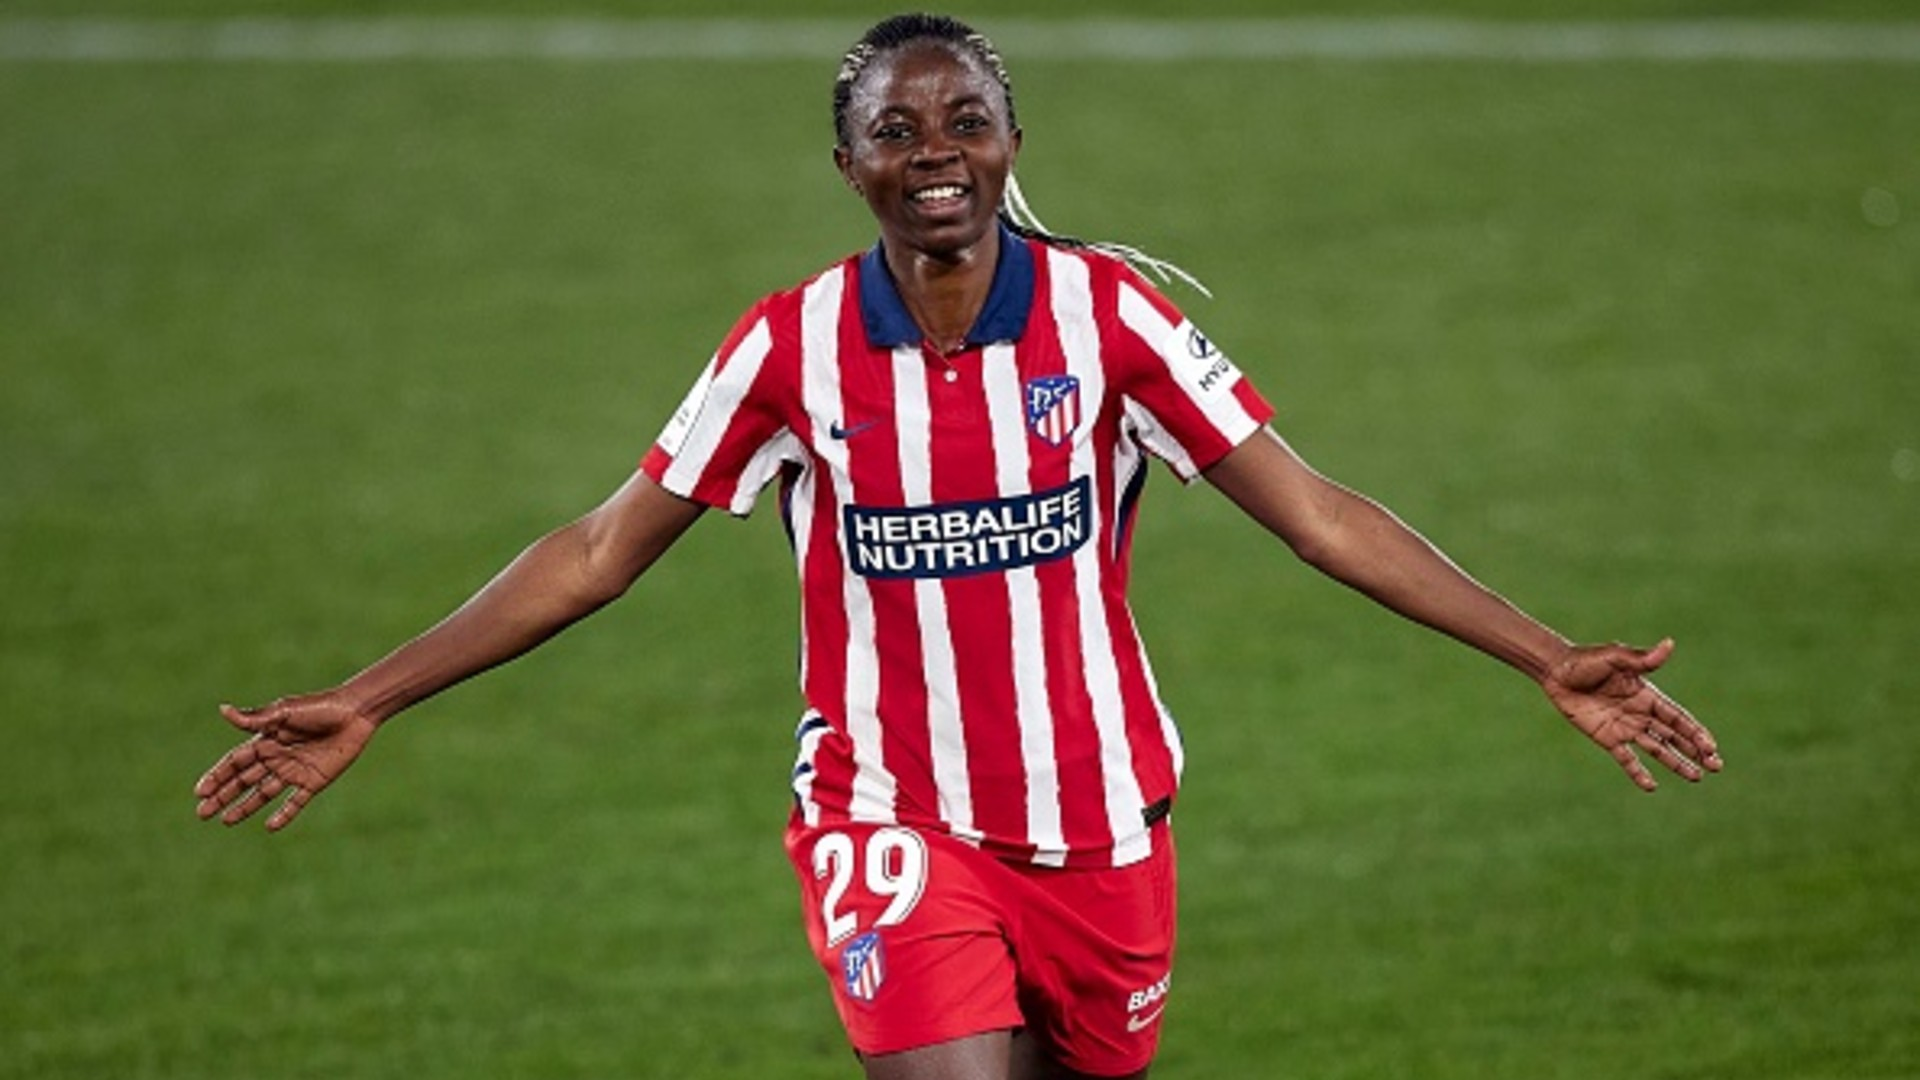 Nchout breaks Iberdrola duck with goal and assist in Atletico Madrid draw